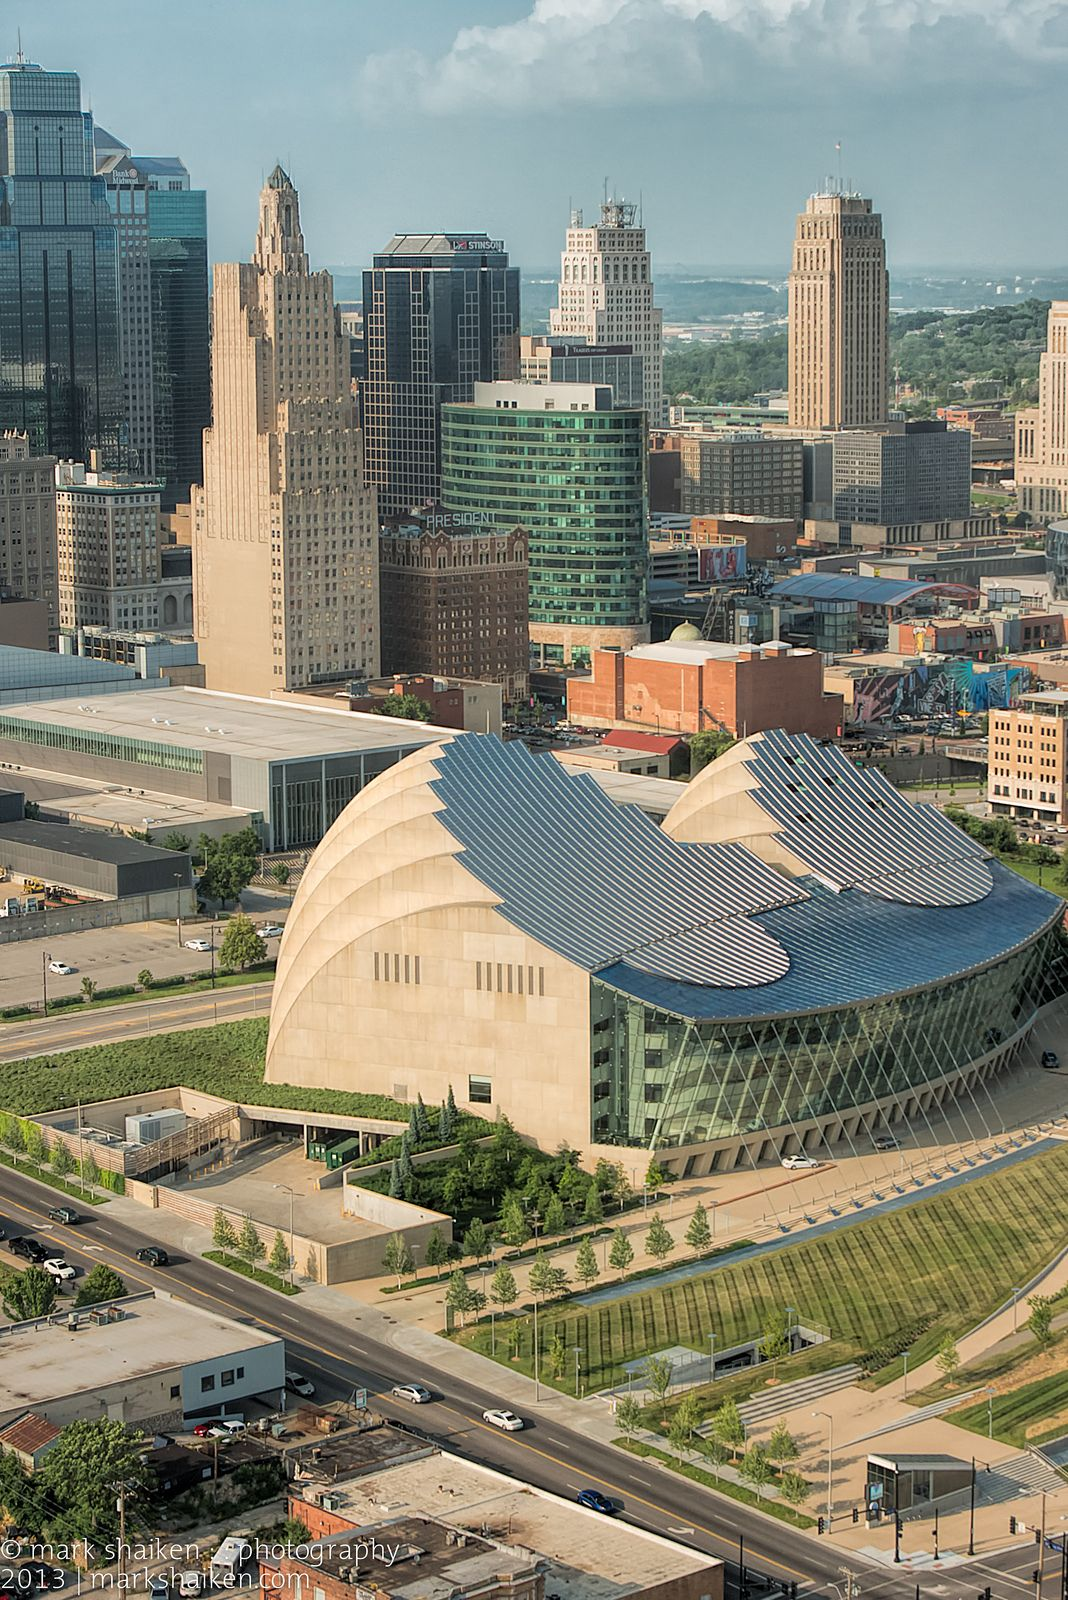 The Kauffman Center Is One Of The Most Beautiful Architectual